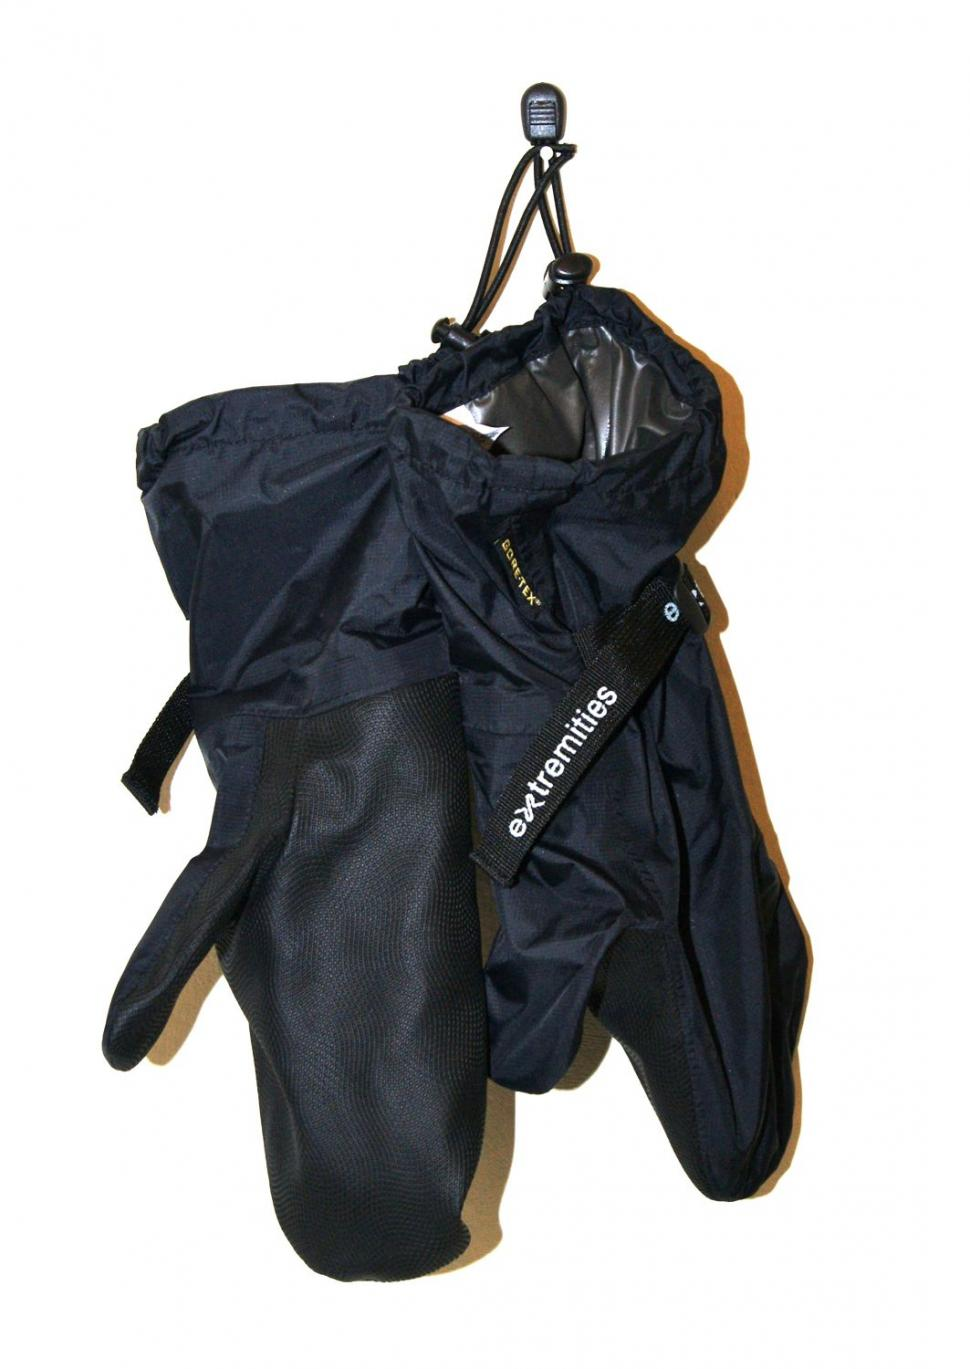 Extremities tuff bag overmitts